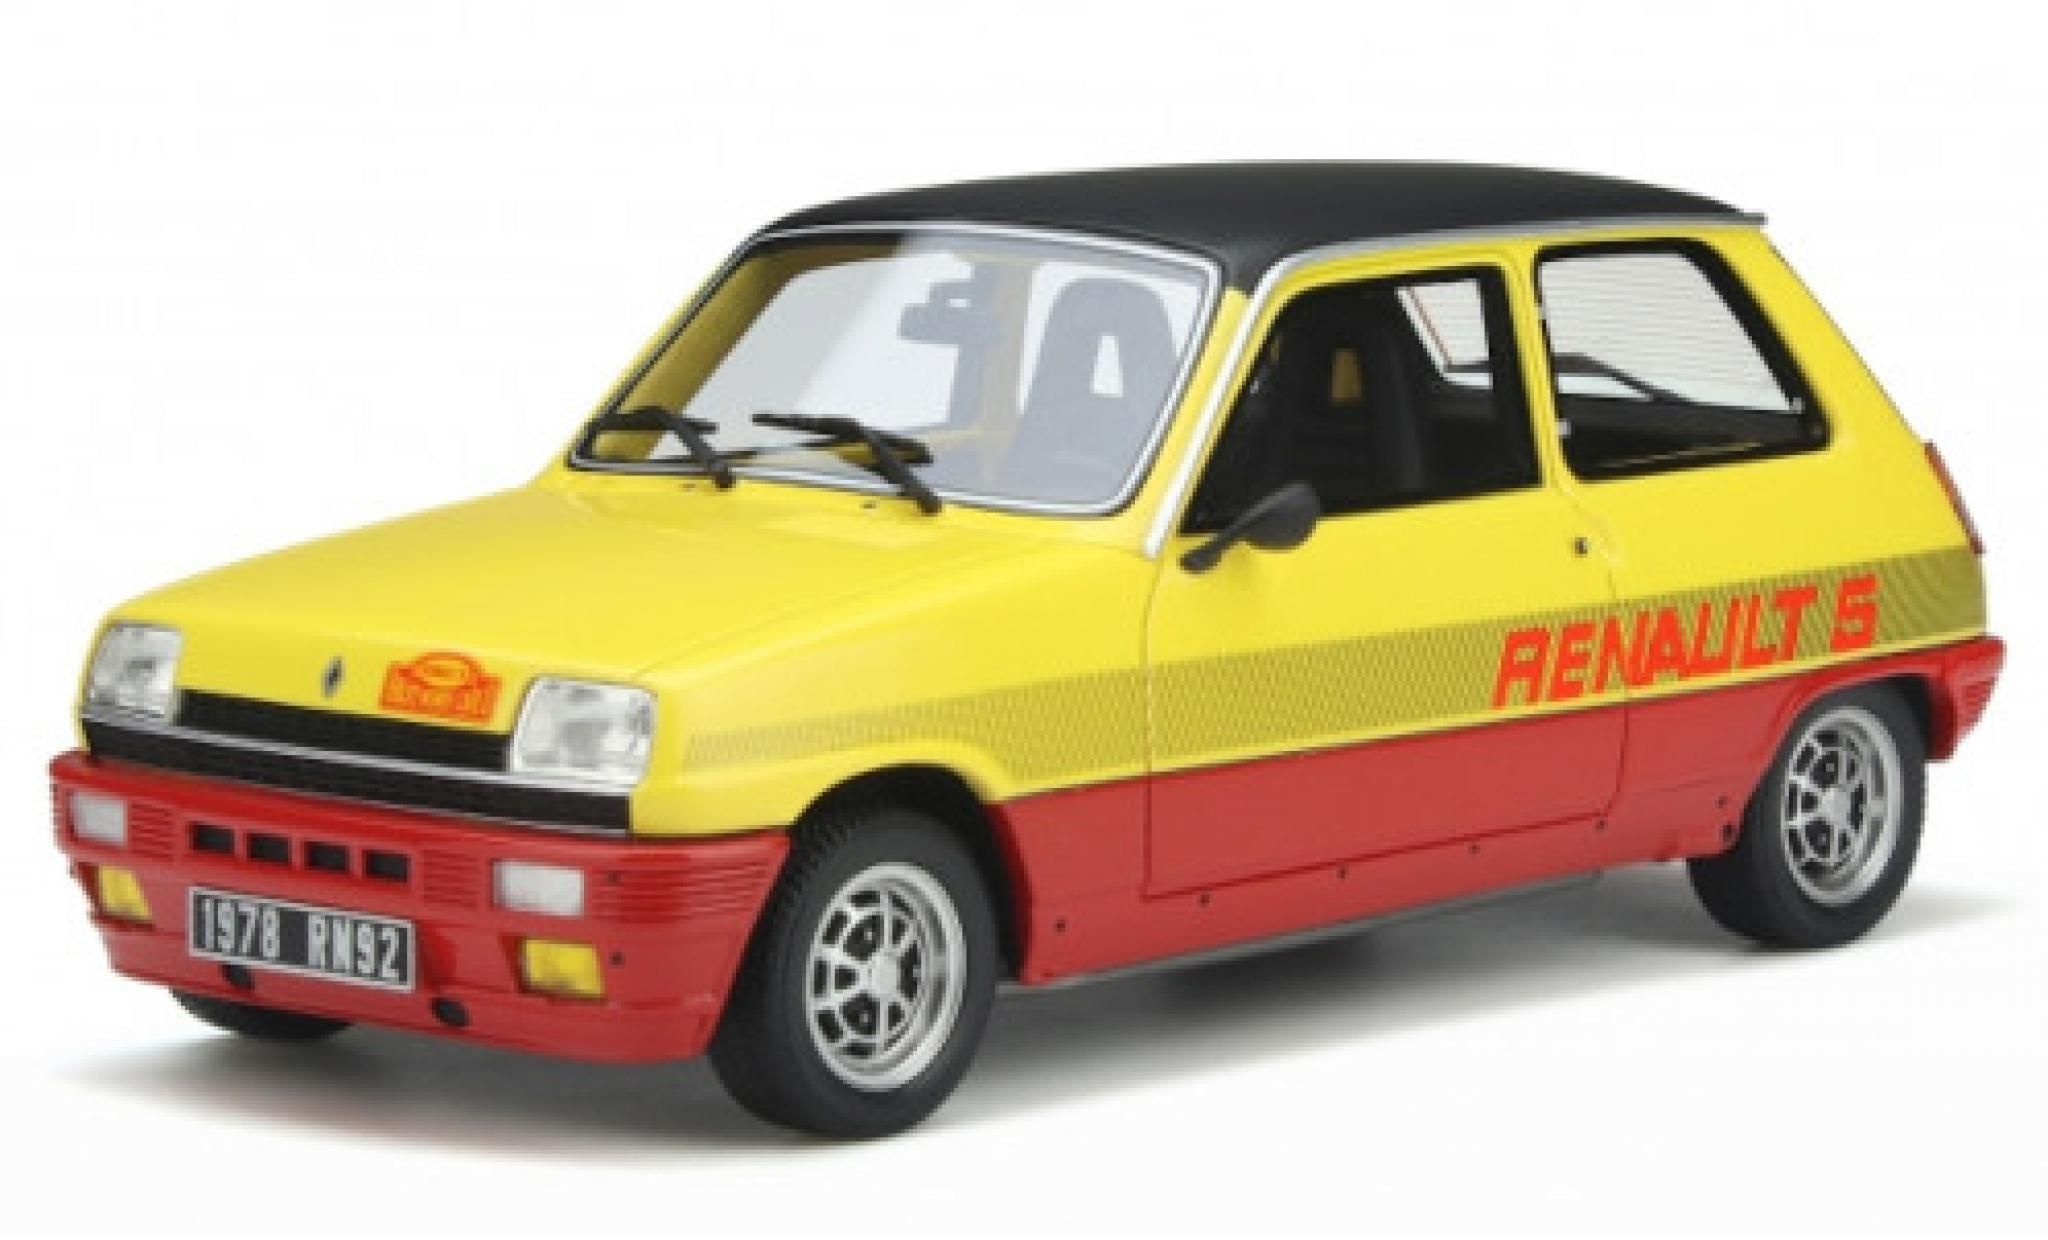 Renault 5 1/18 Ottomobile TS Monte Carlo yellow/red 1978